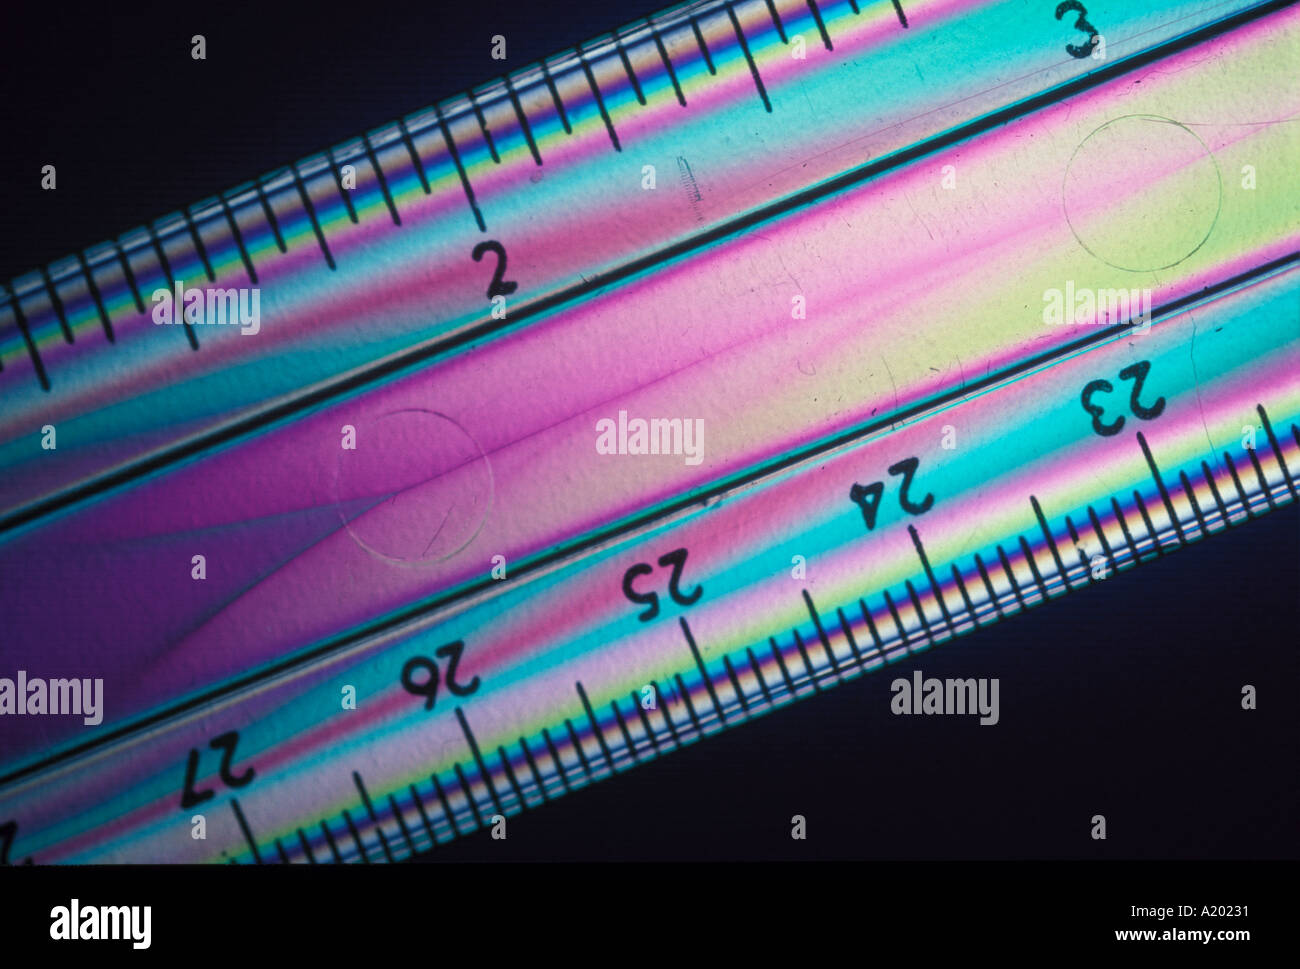 clear plastic ruler in polarised light produces colours related to stress - Stock Image